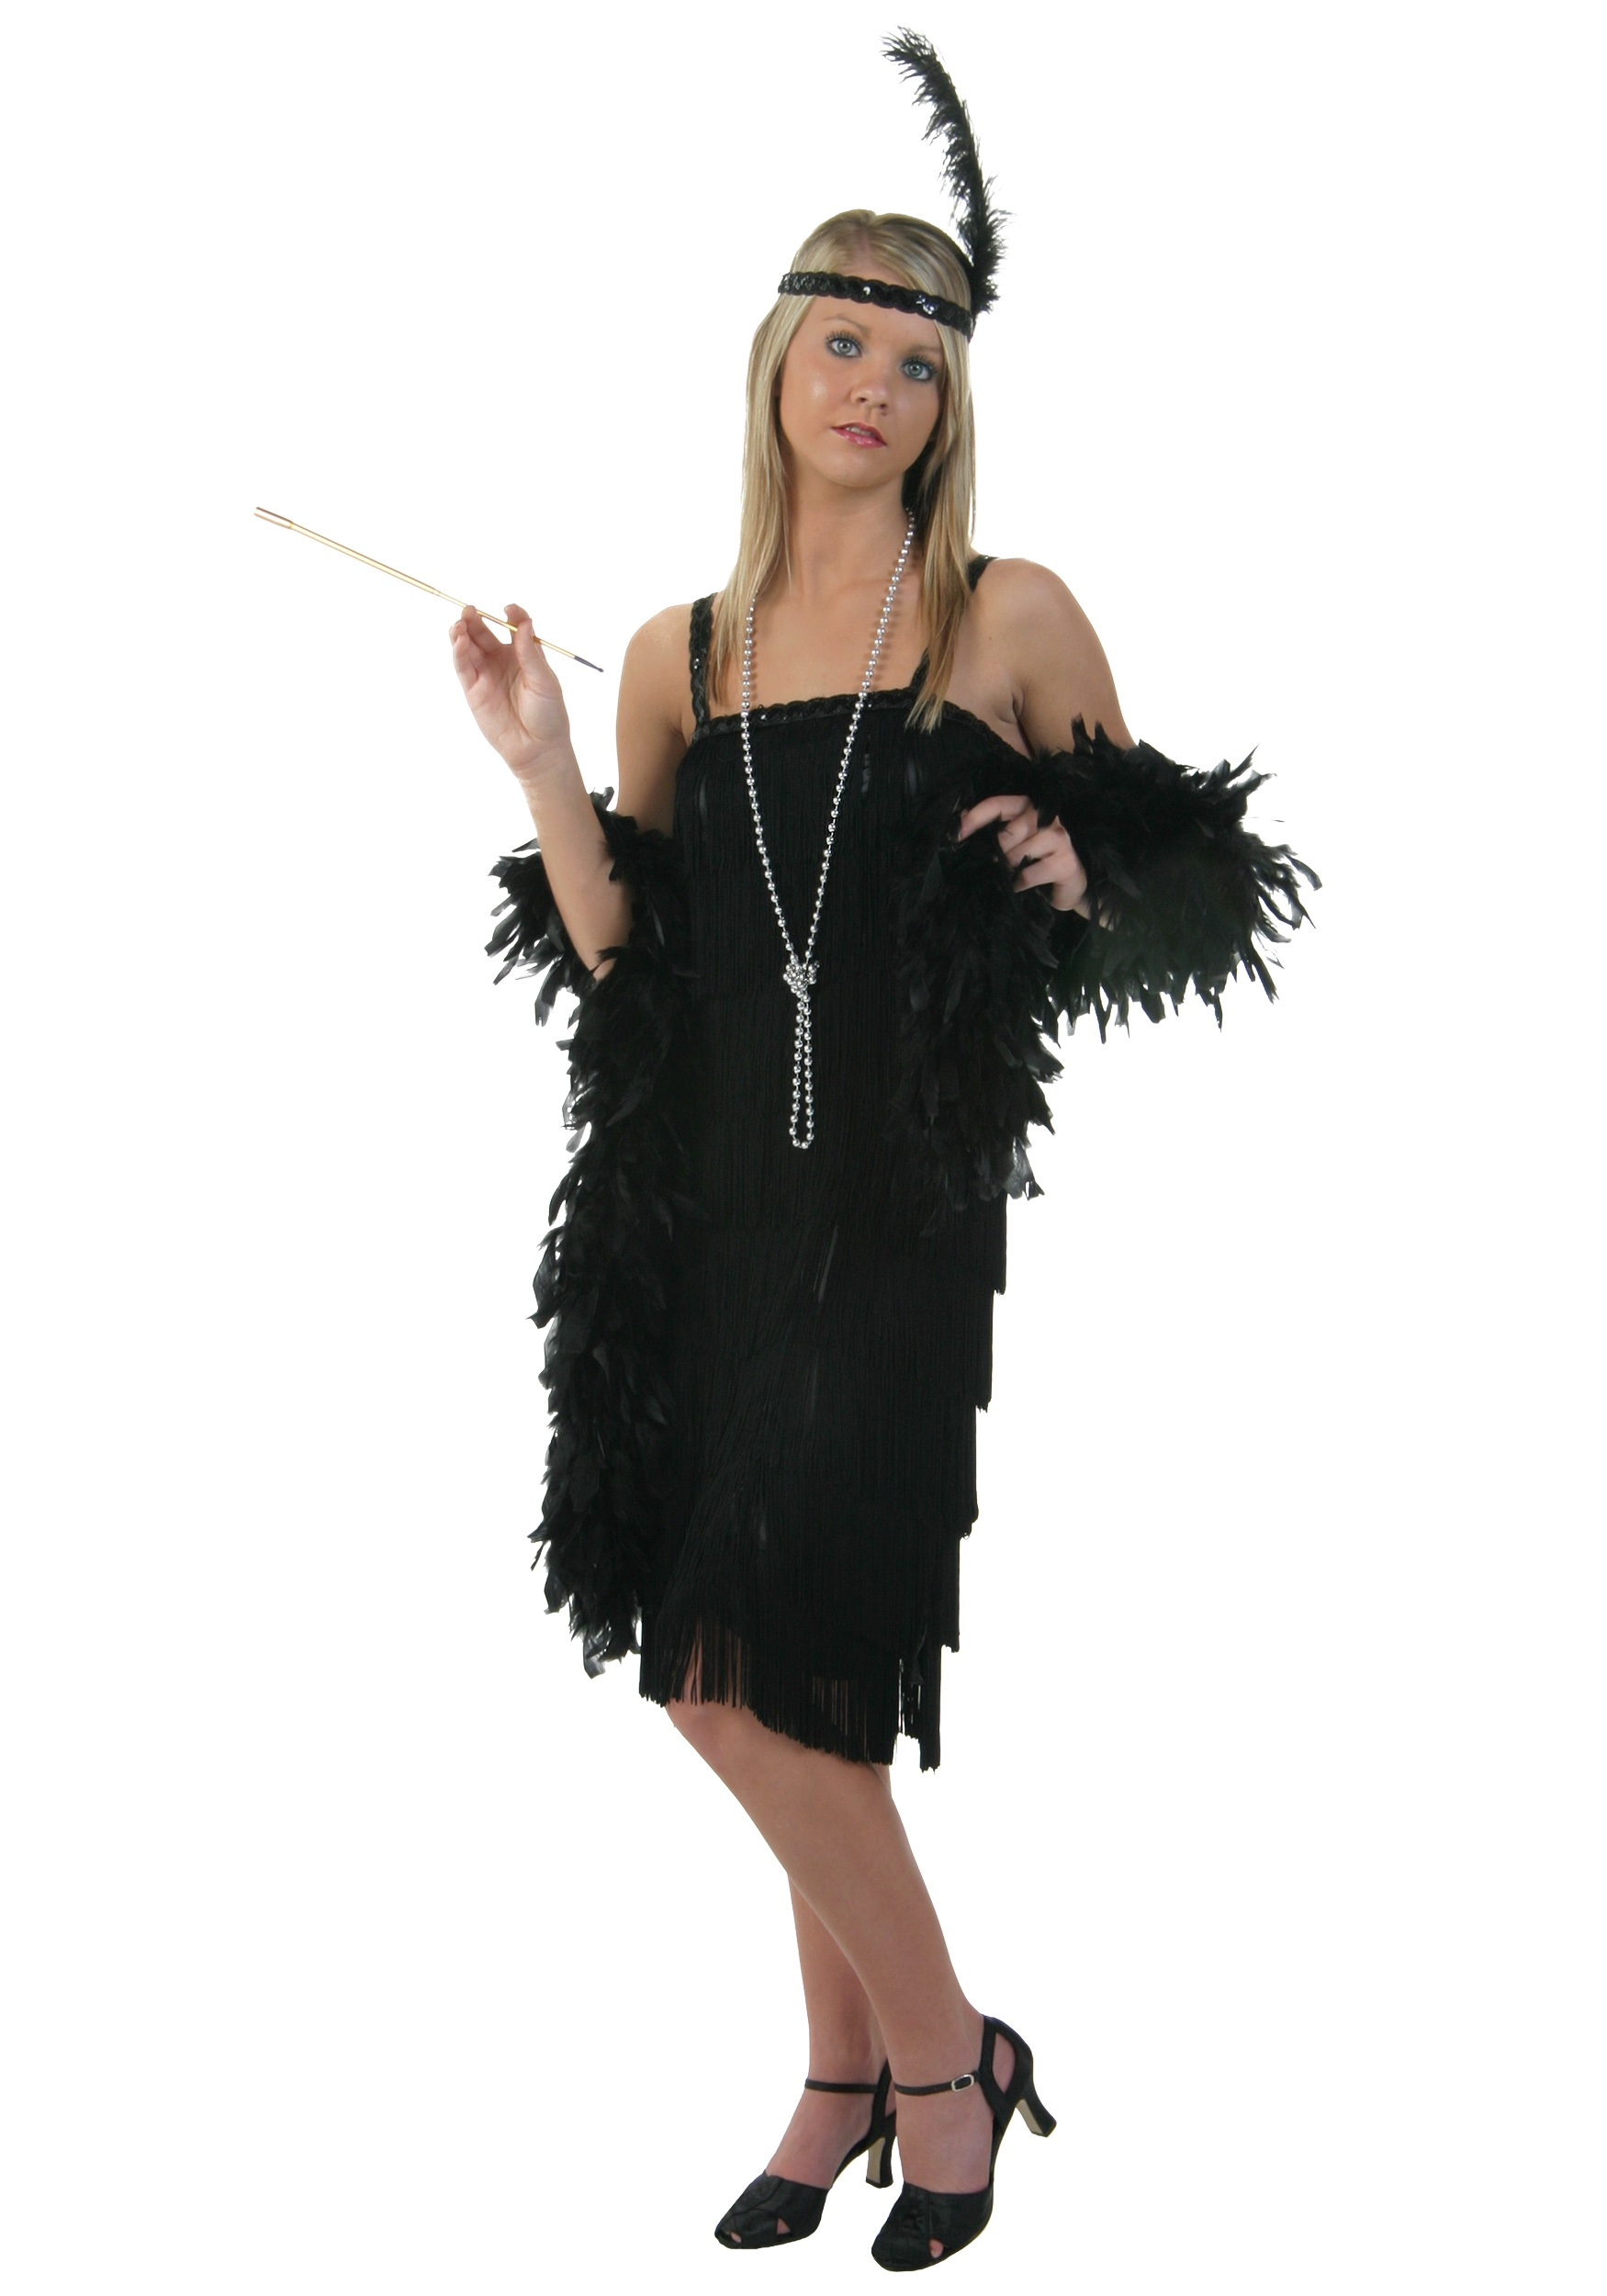 c1da3d64f6fb1 Black Charleston Flapper Dress - Halloween Costumes